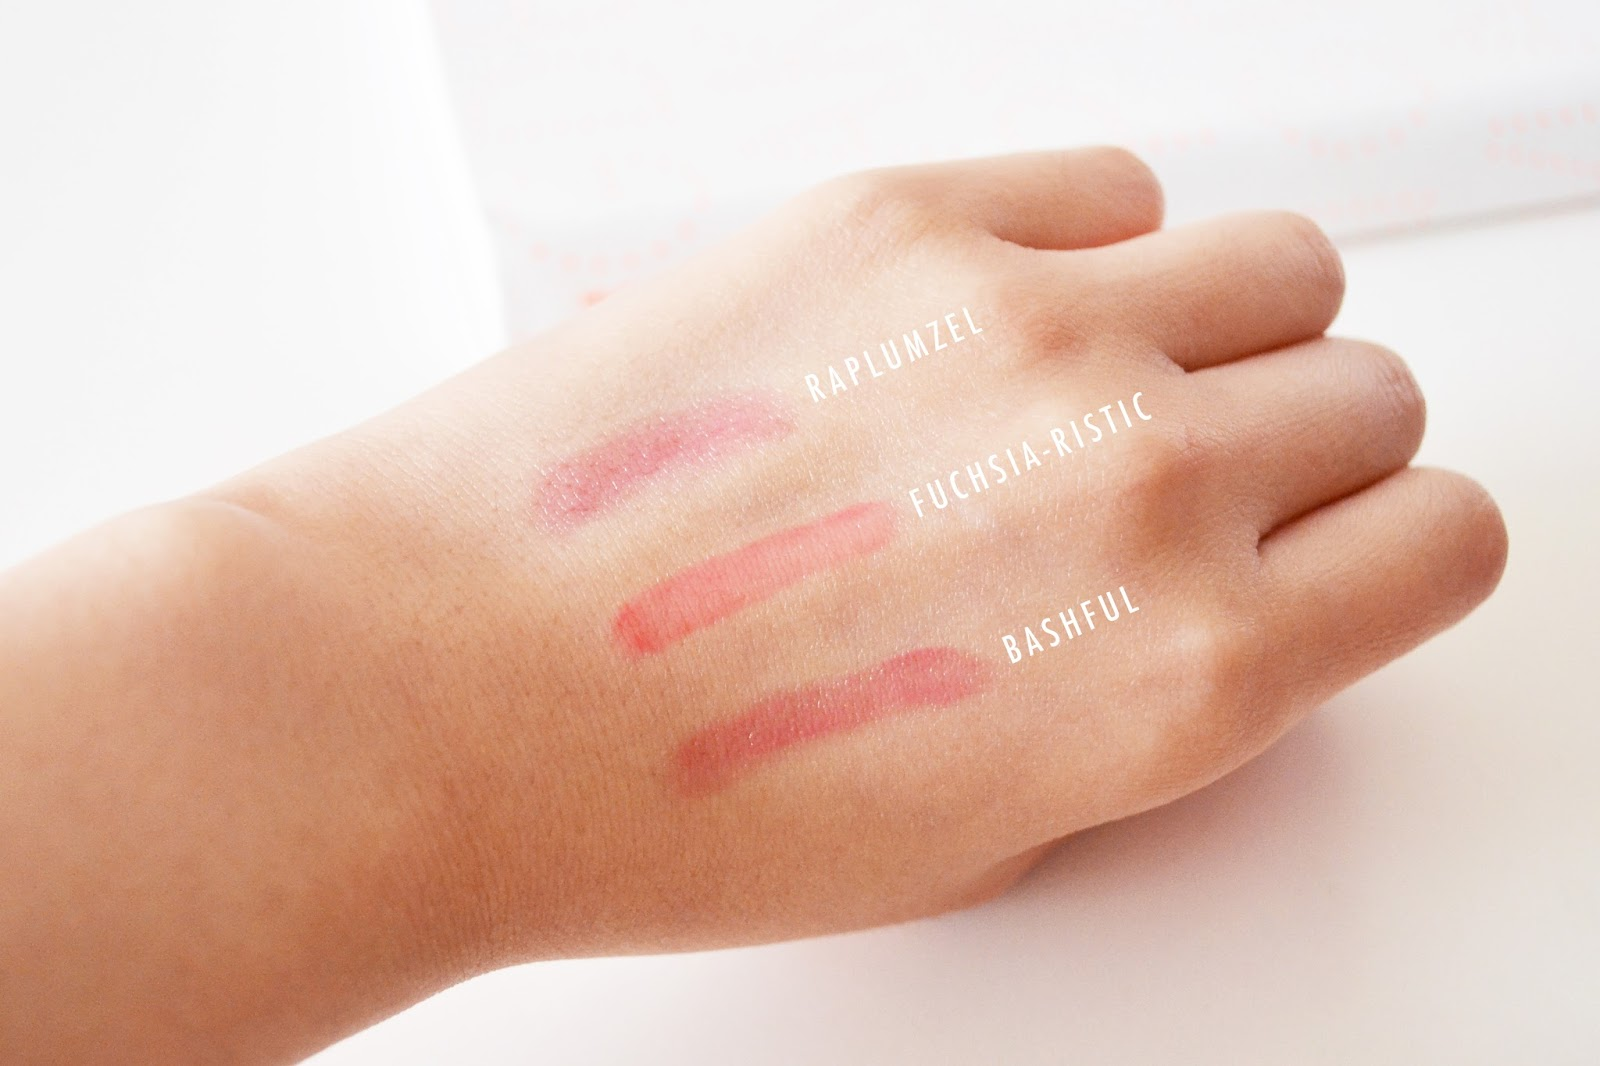 Sexy Mother Pucker Lip Crayons swatch, soap and glory lip gloss